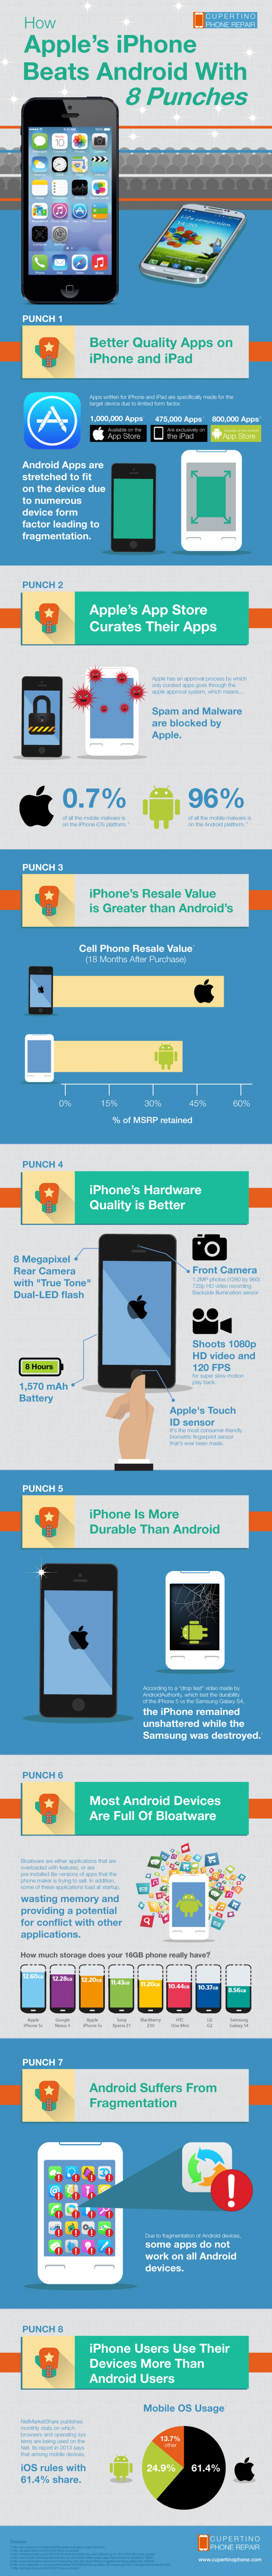 How Apple's iPhone is beating Android with 8 Punches Infographic